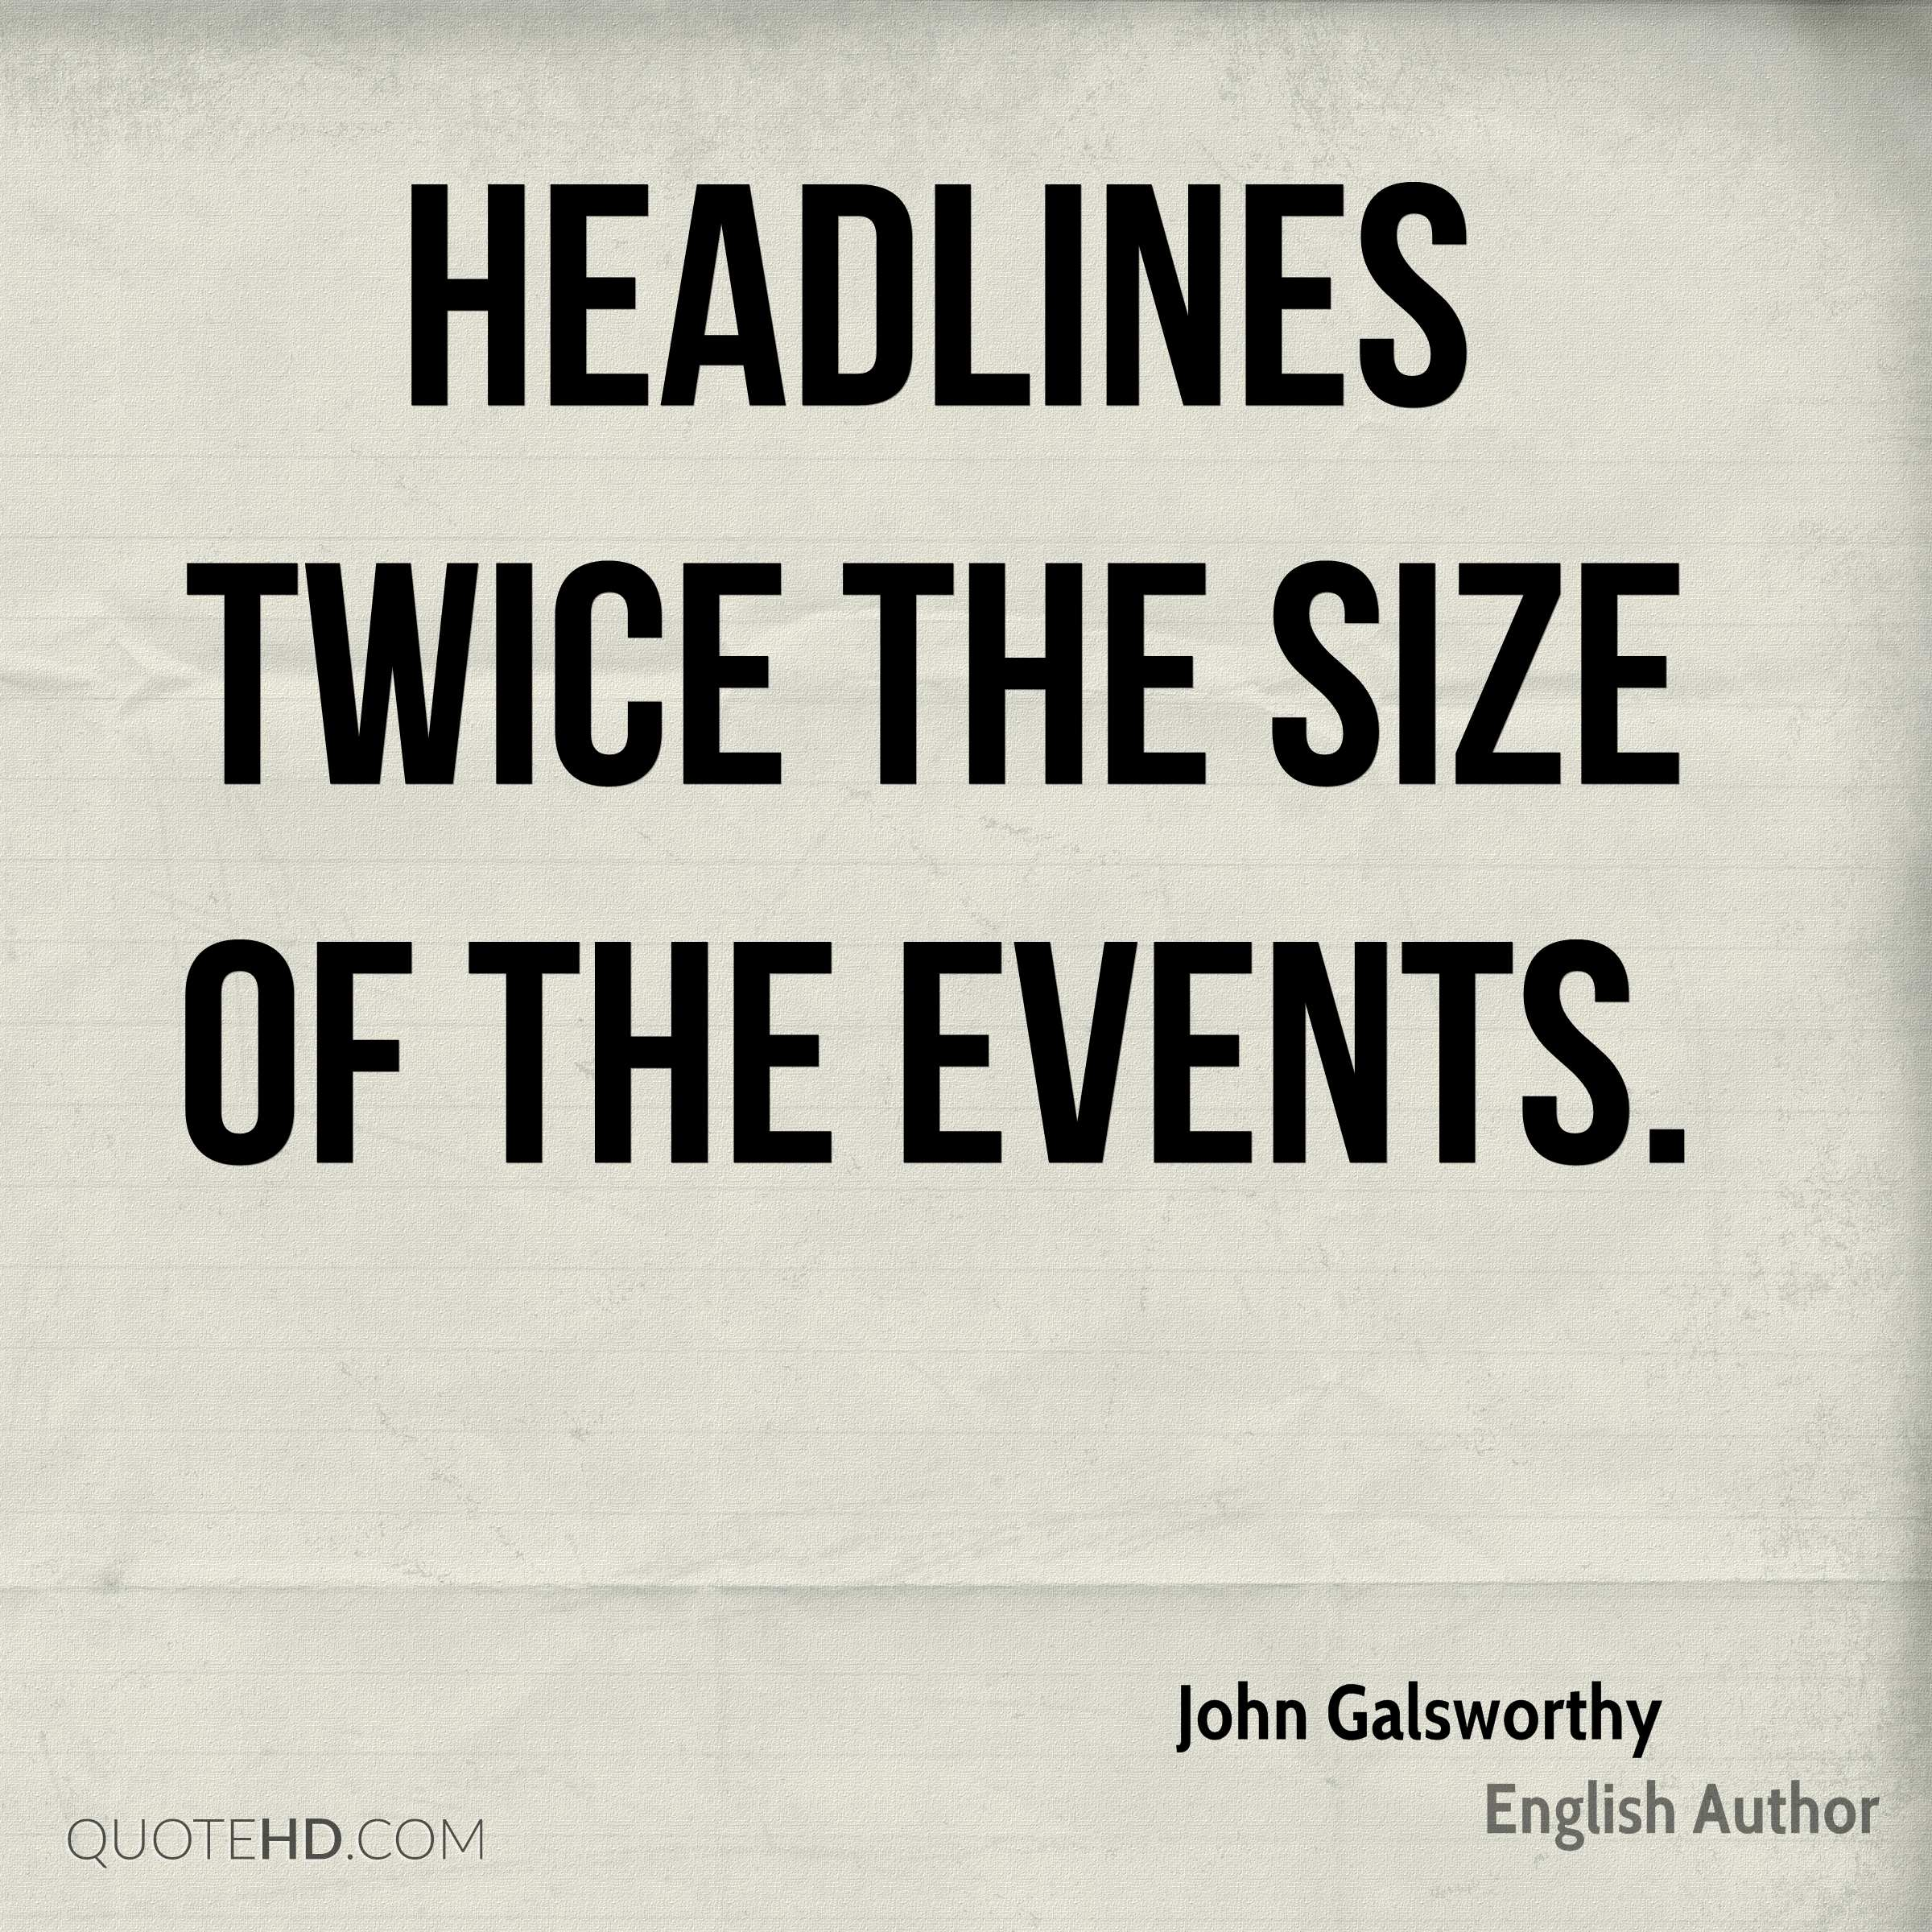 Headlines twice the size of the events.